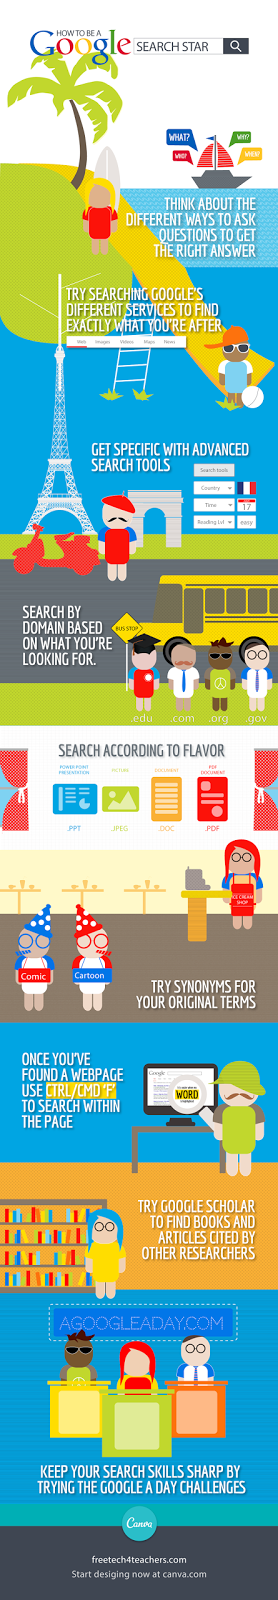 Free Technology for Teachers: Great Google Search Strategies Every Student Can Use - Infographic